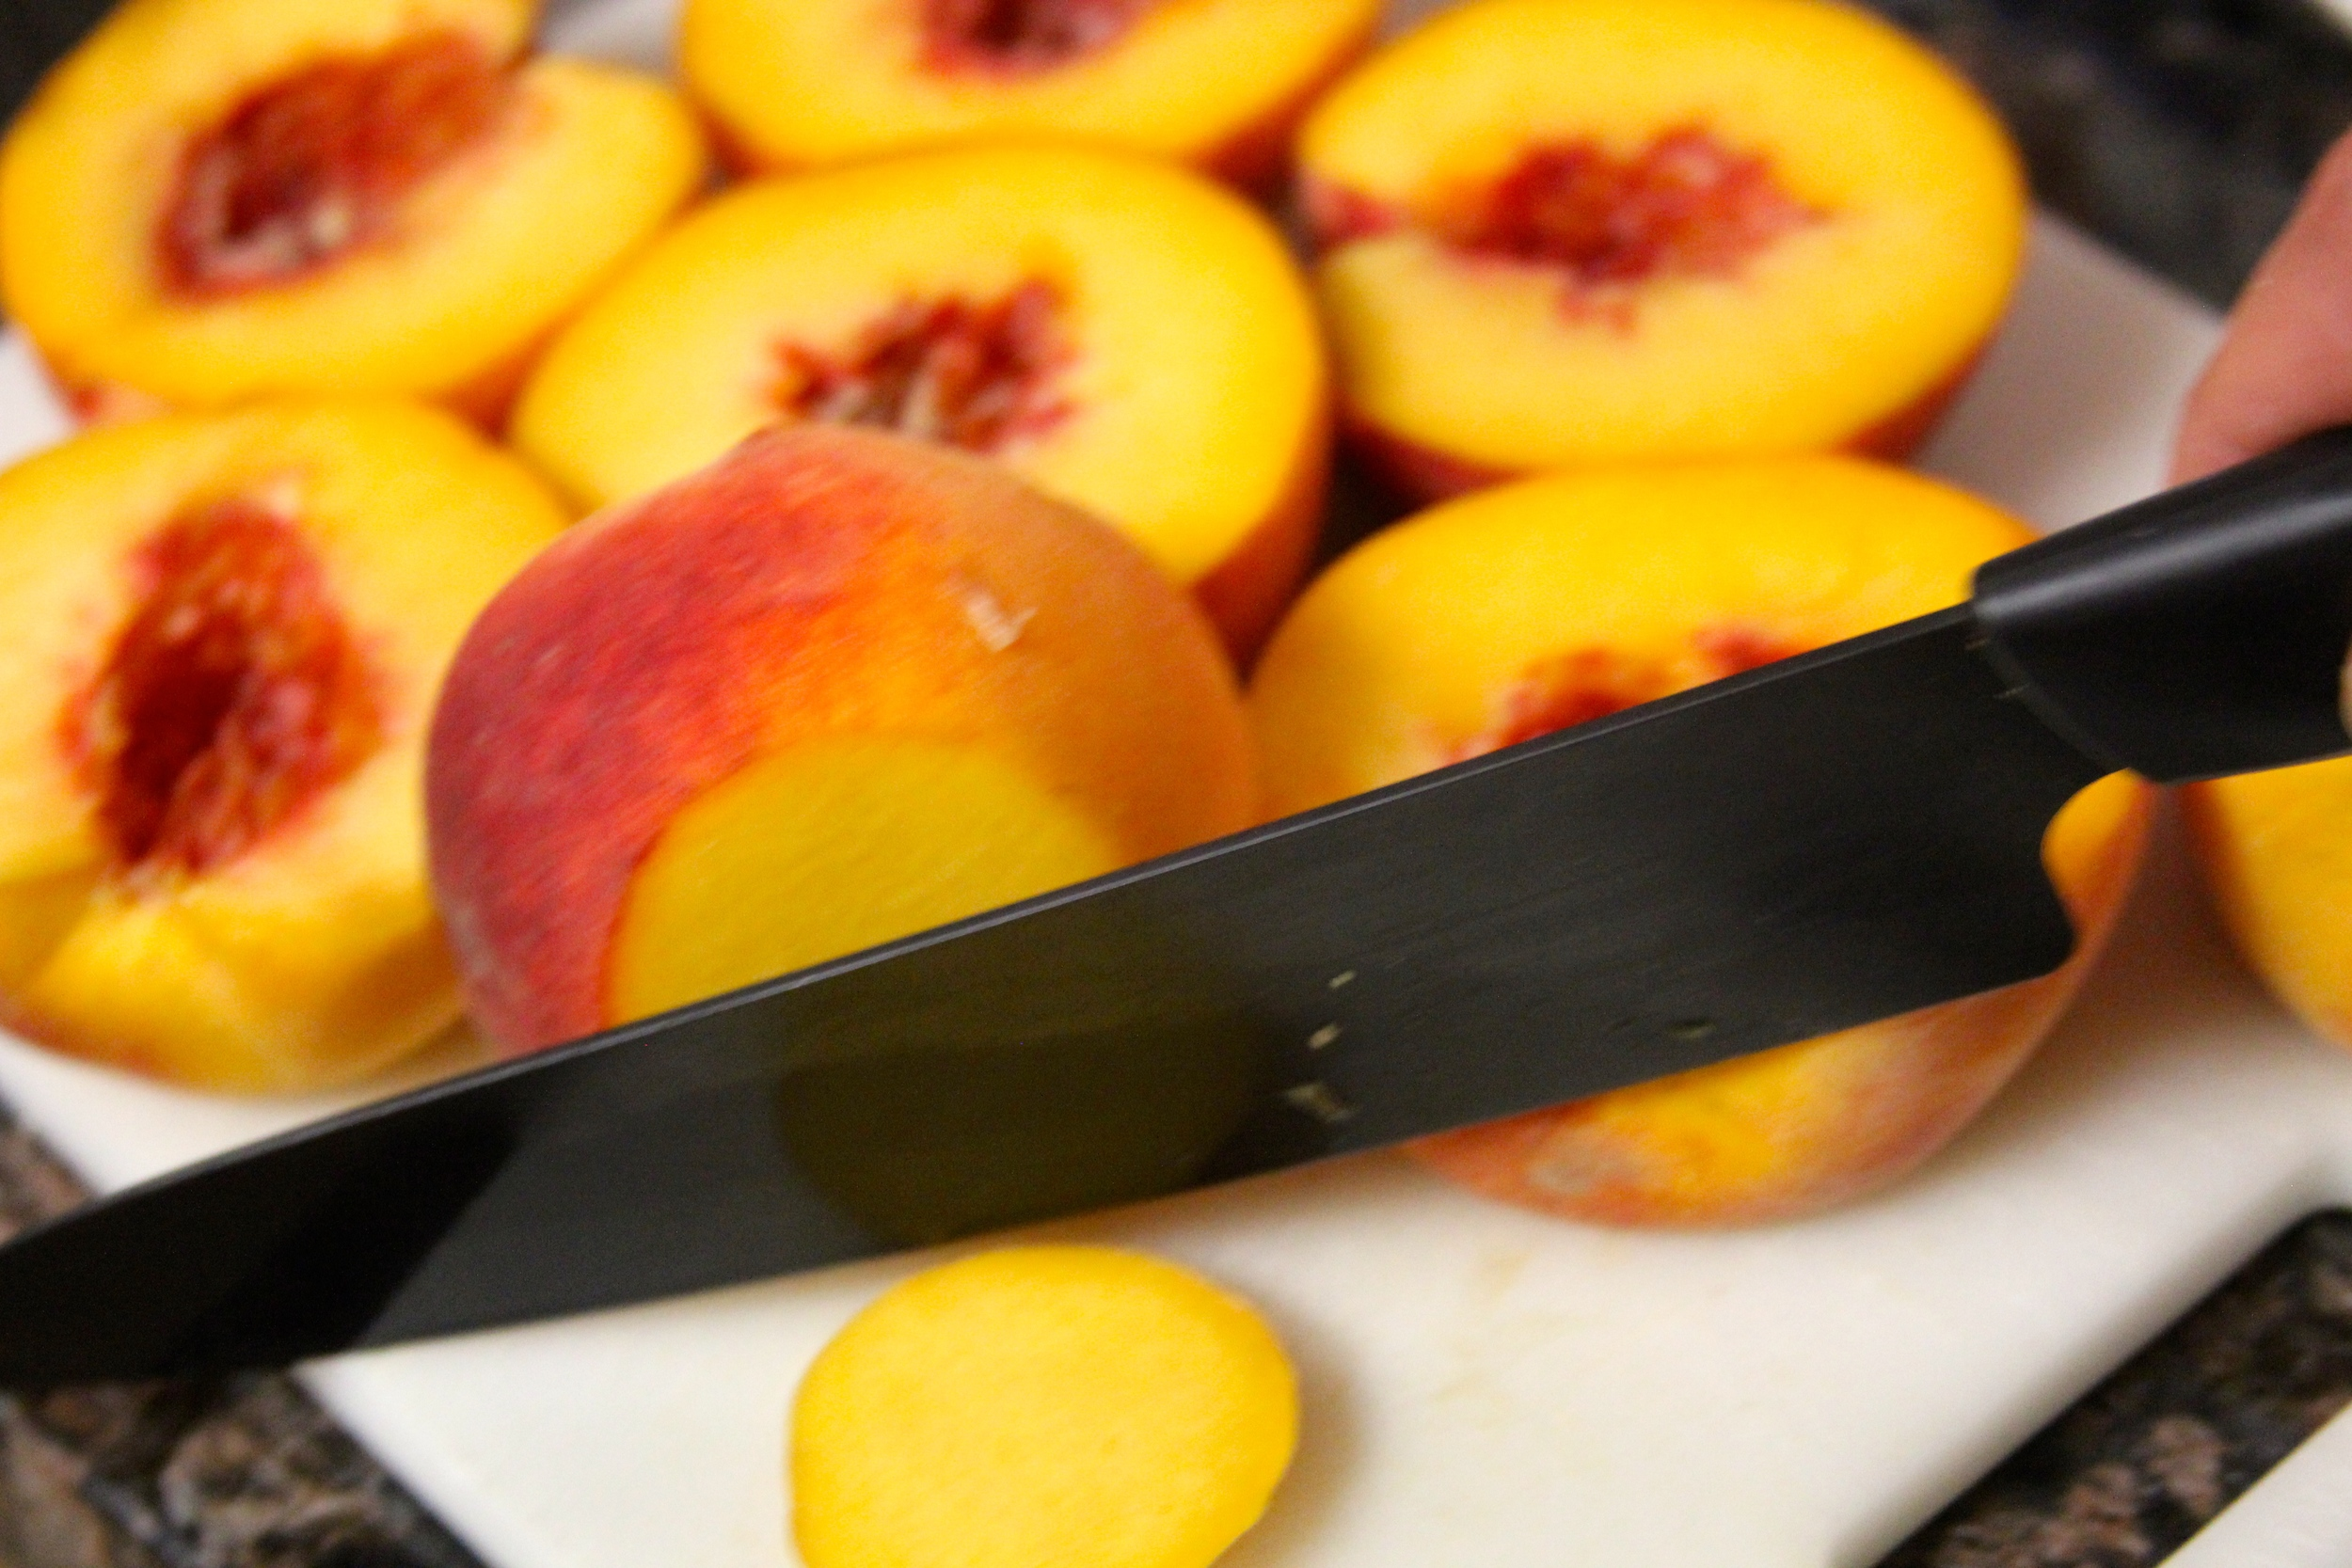 Remove Ends from Peaches